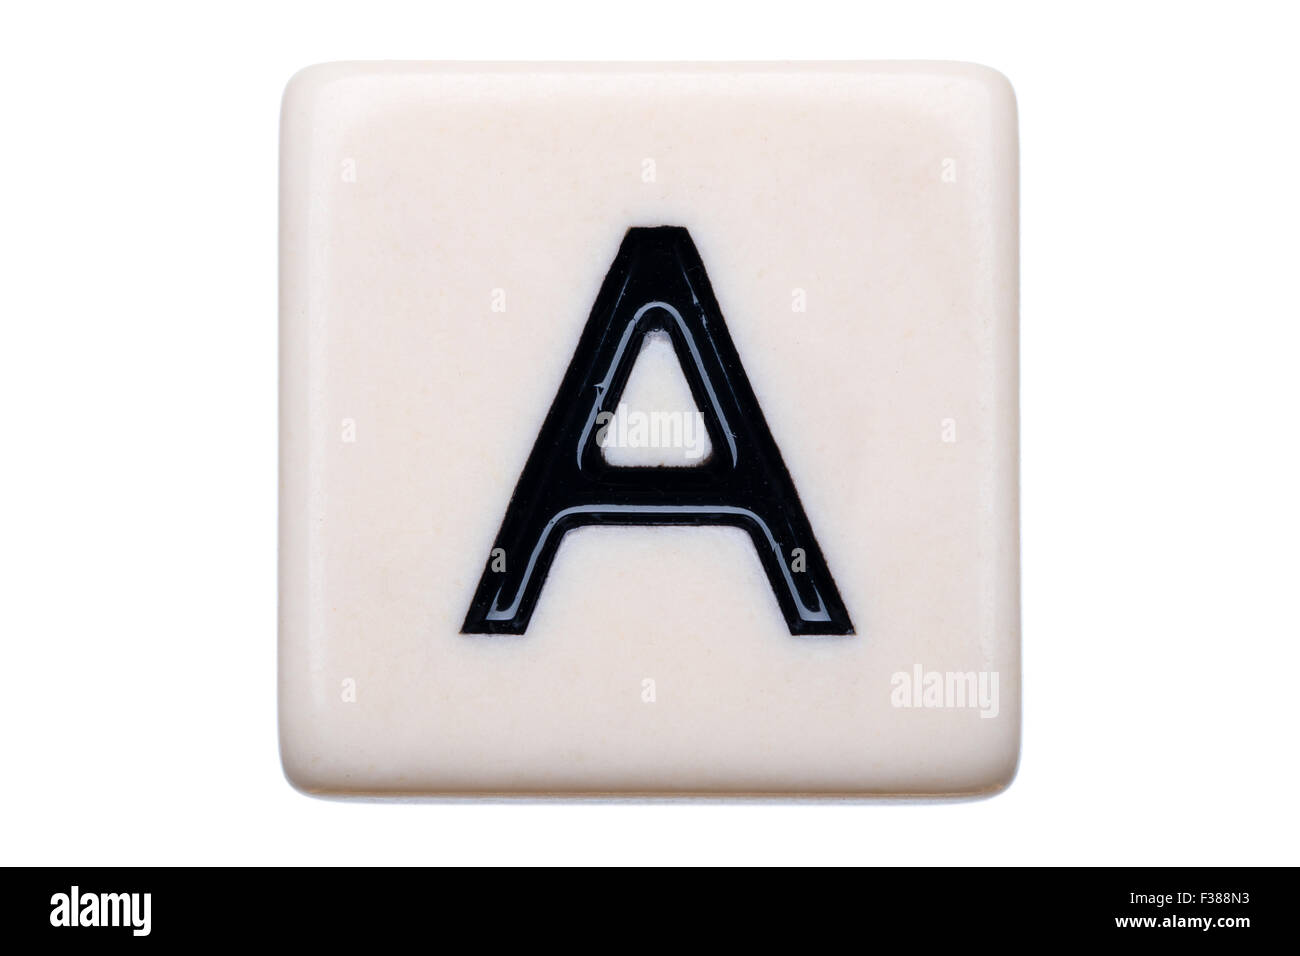 A macro shot of a game tile with the letter A on it on a white background. - Stock Image